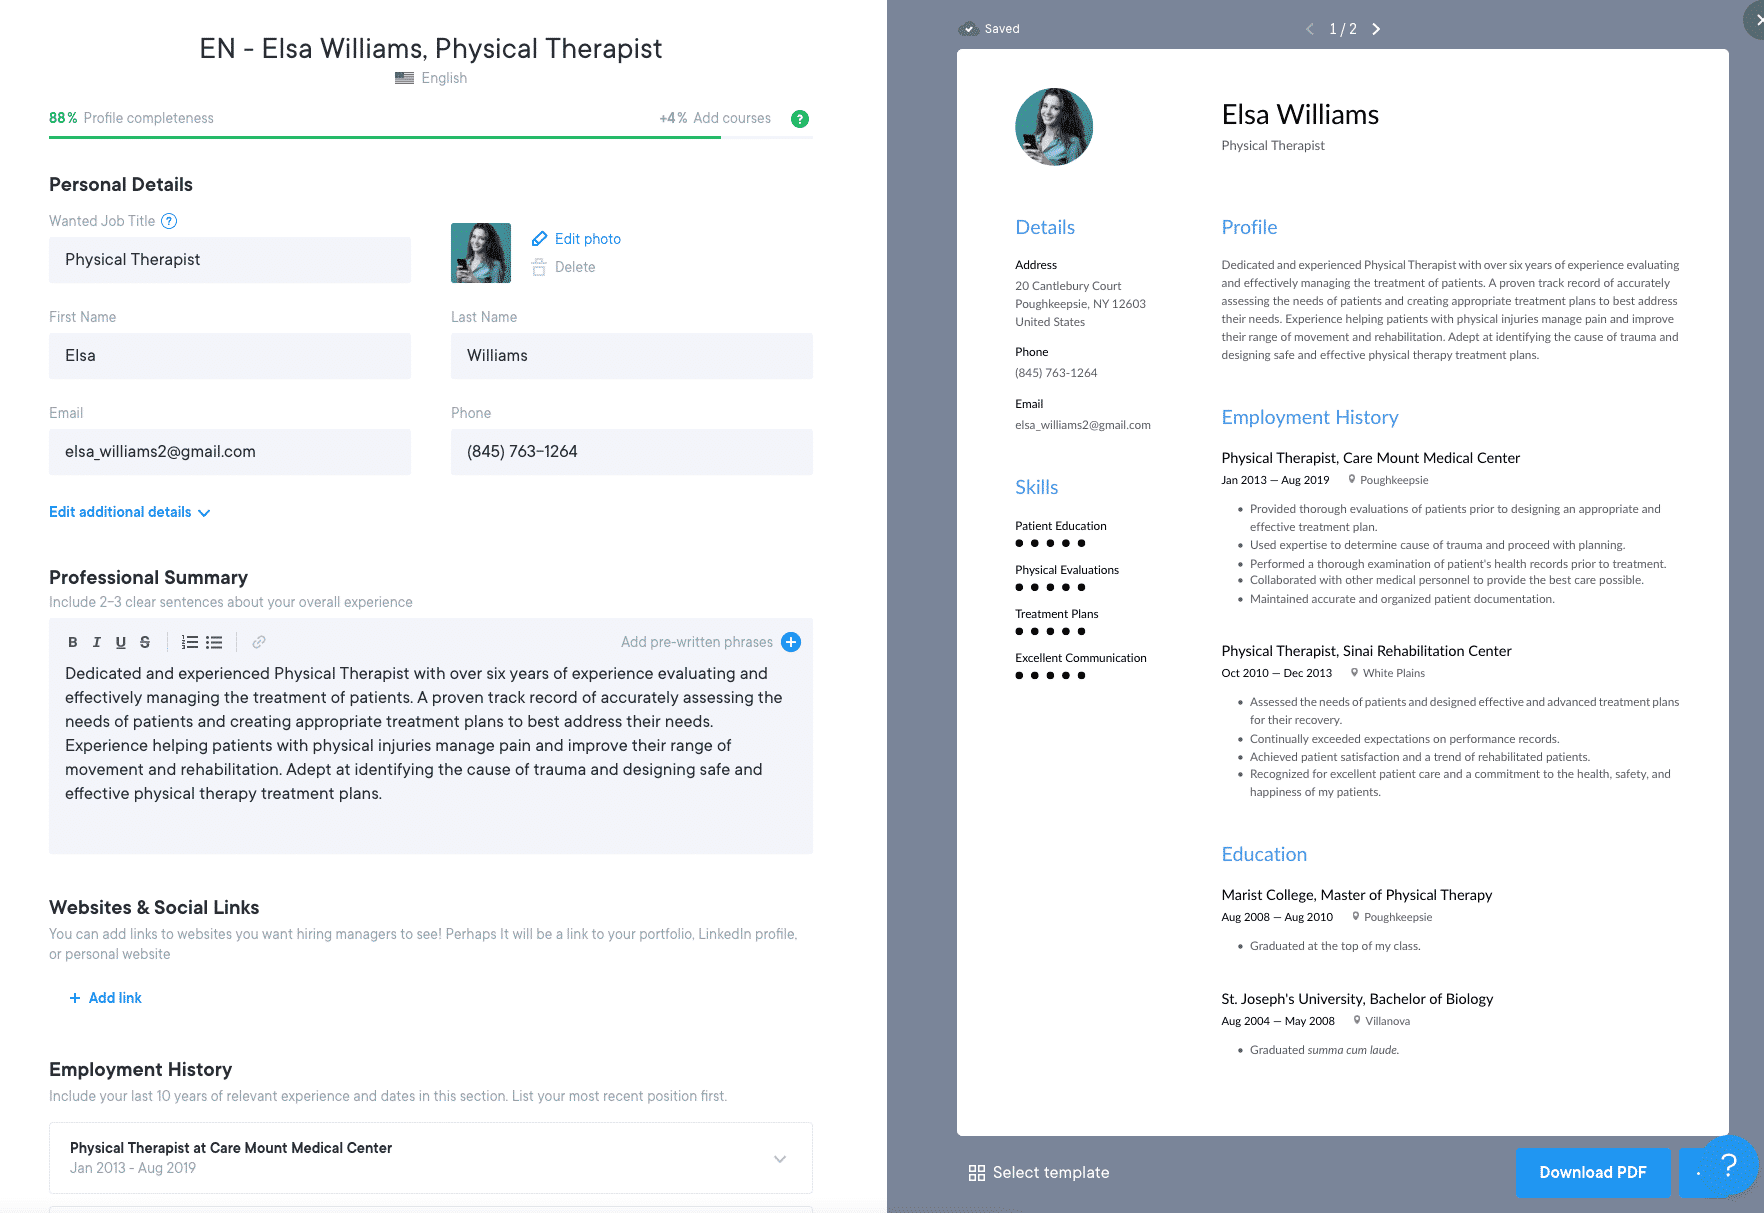 Image for part: Resume.io